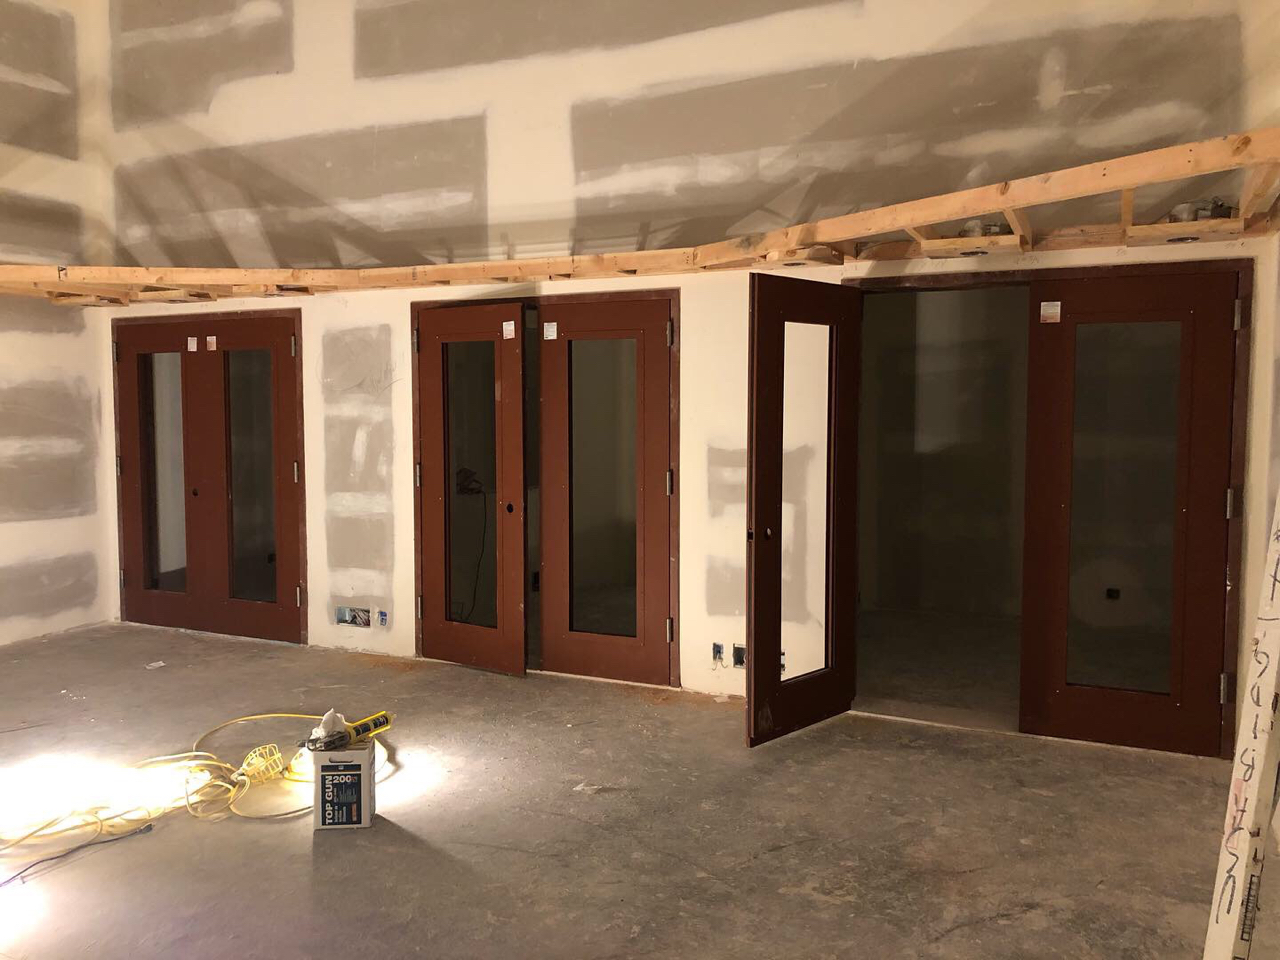 Doors hung for the booths in tracking room 1.